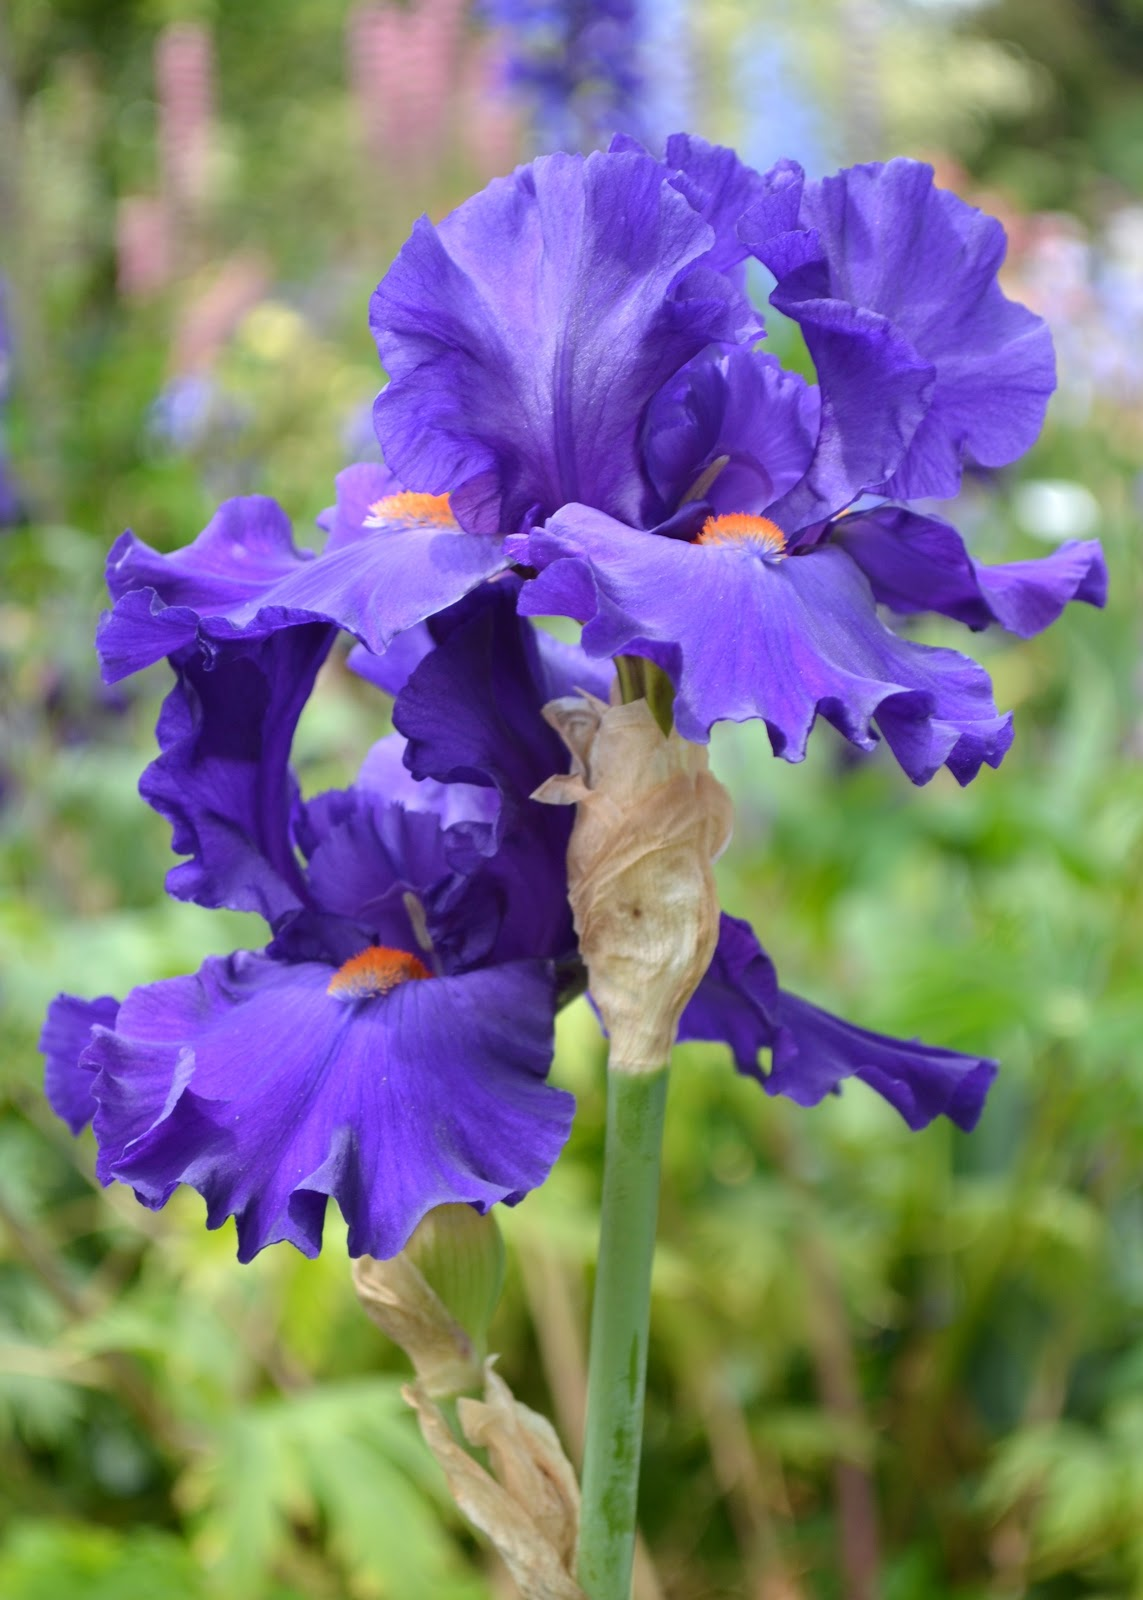 Musings Meanderings And Merriment From Rose Schreiners Iris Gardens